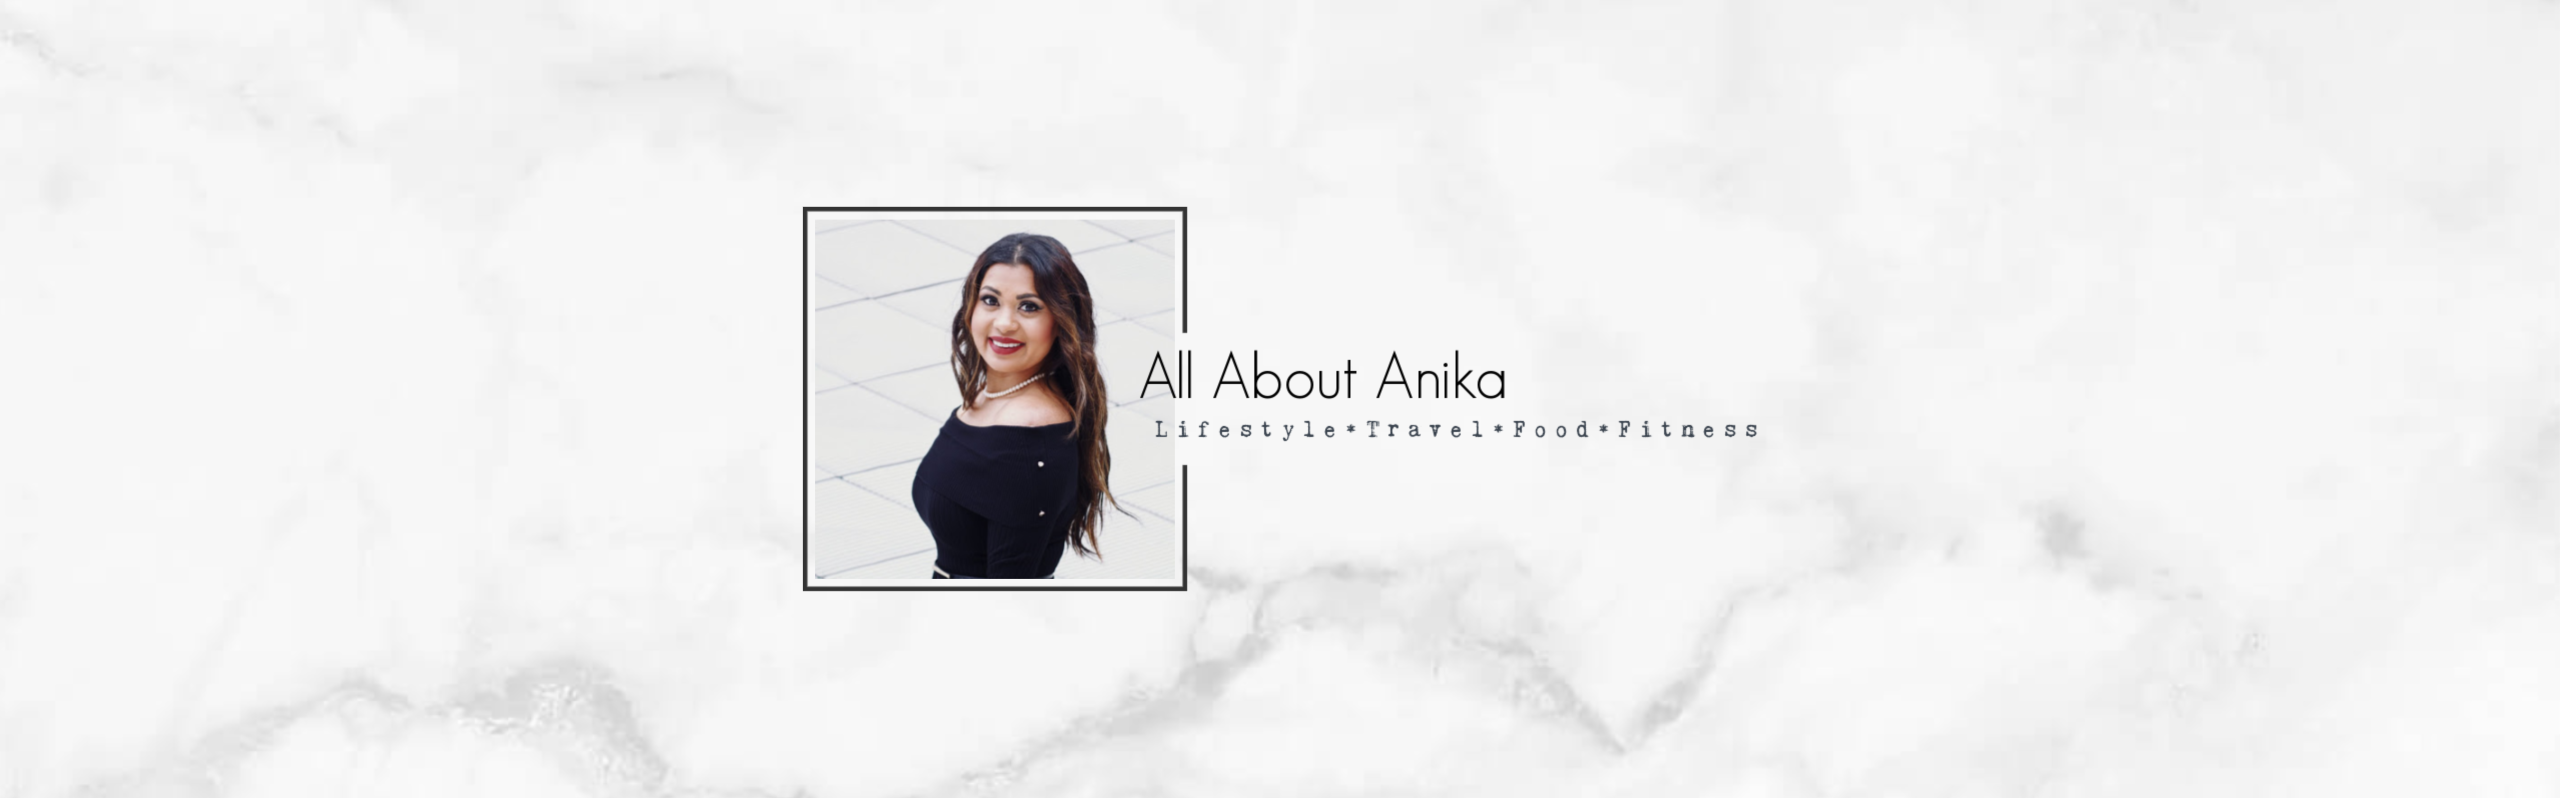 All About Anika